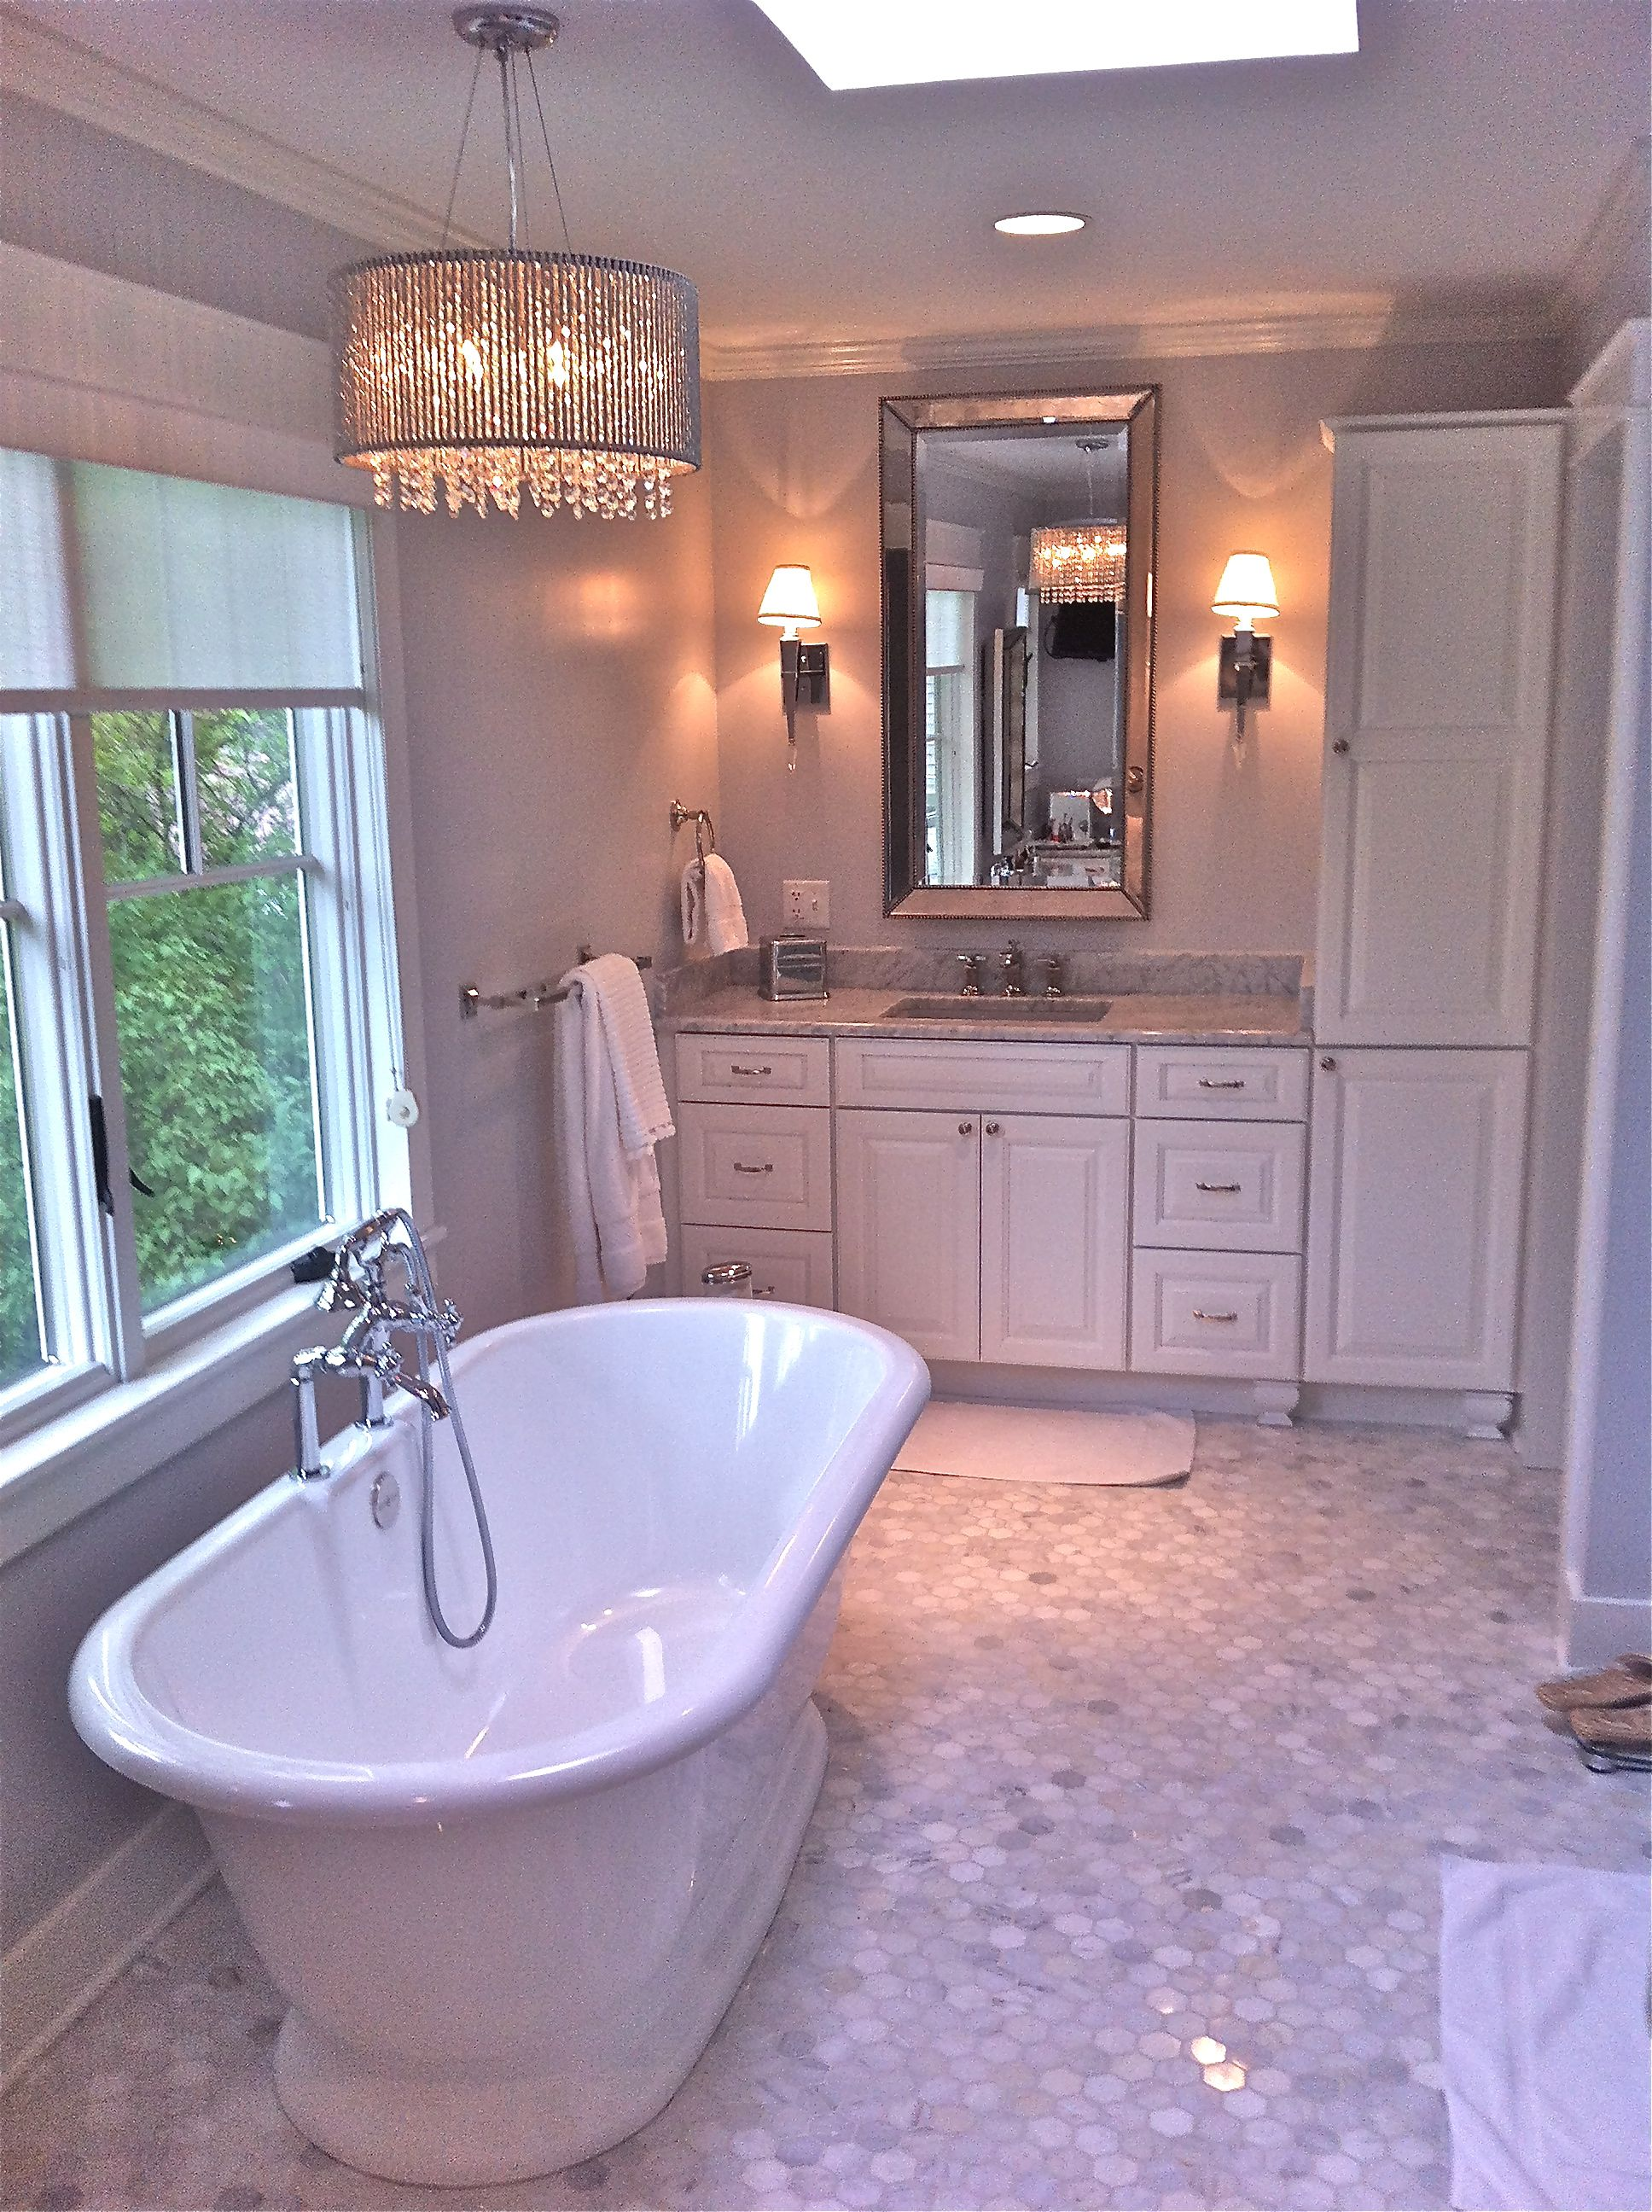 Nice big tub in this luxurious bathroom! http://planese.gr8.com ...